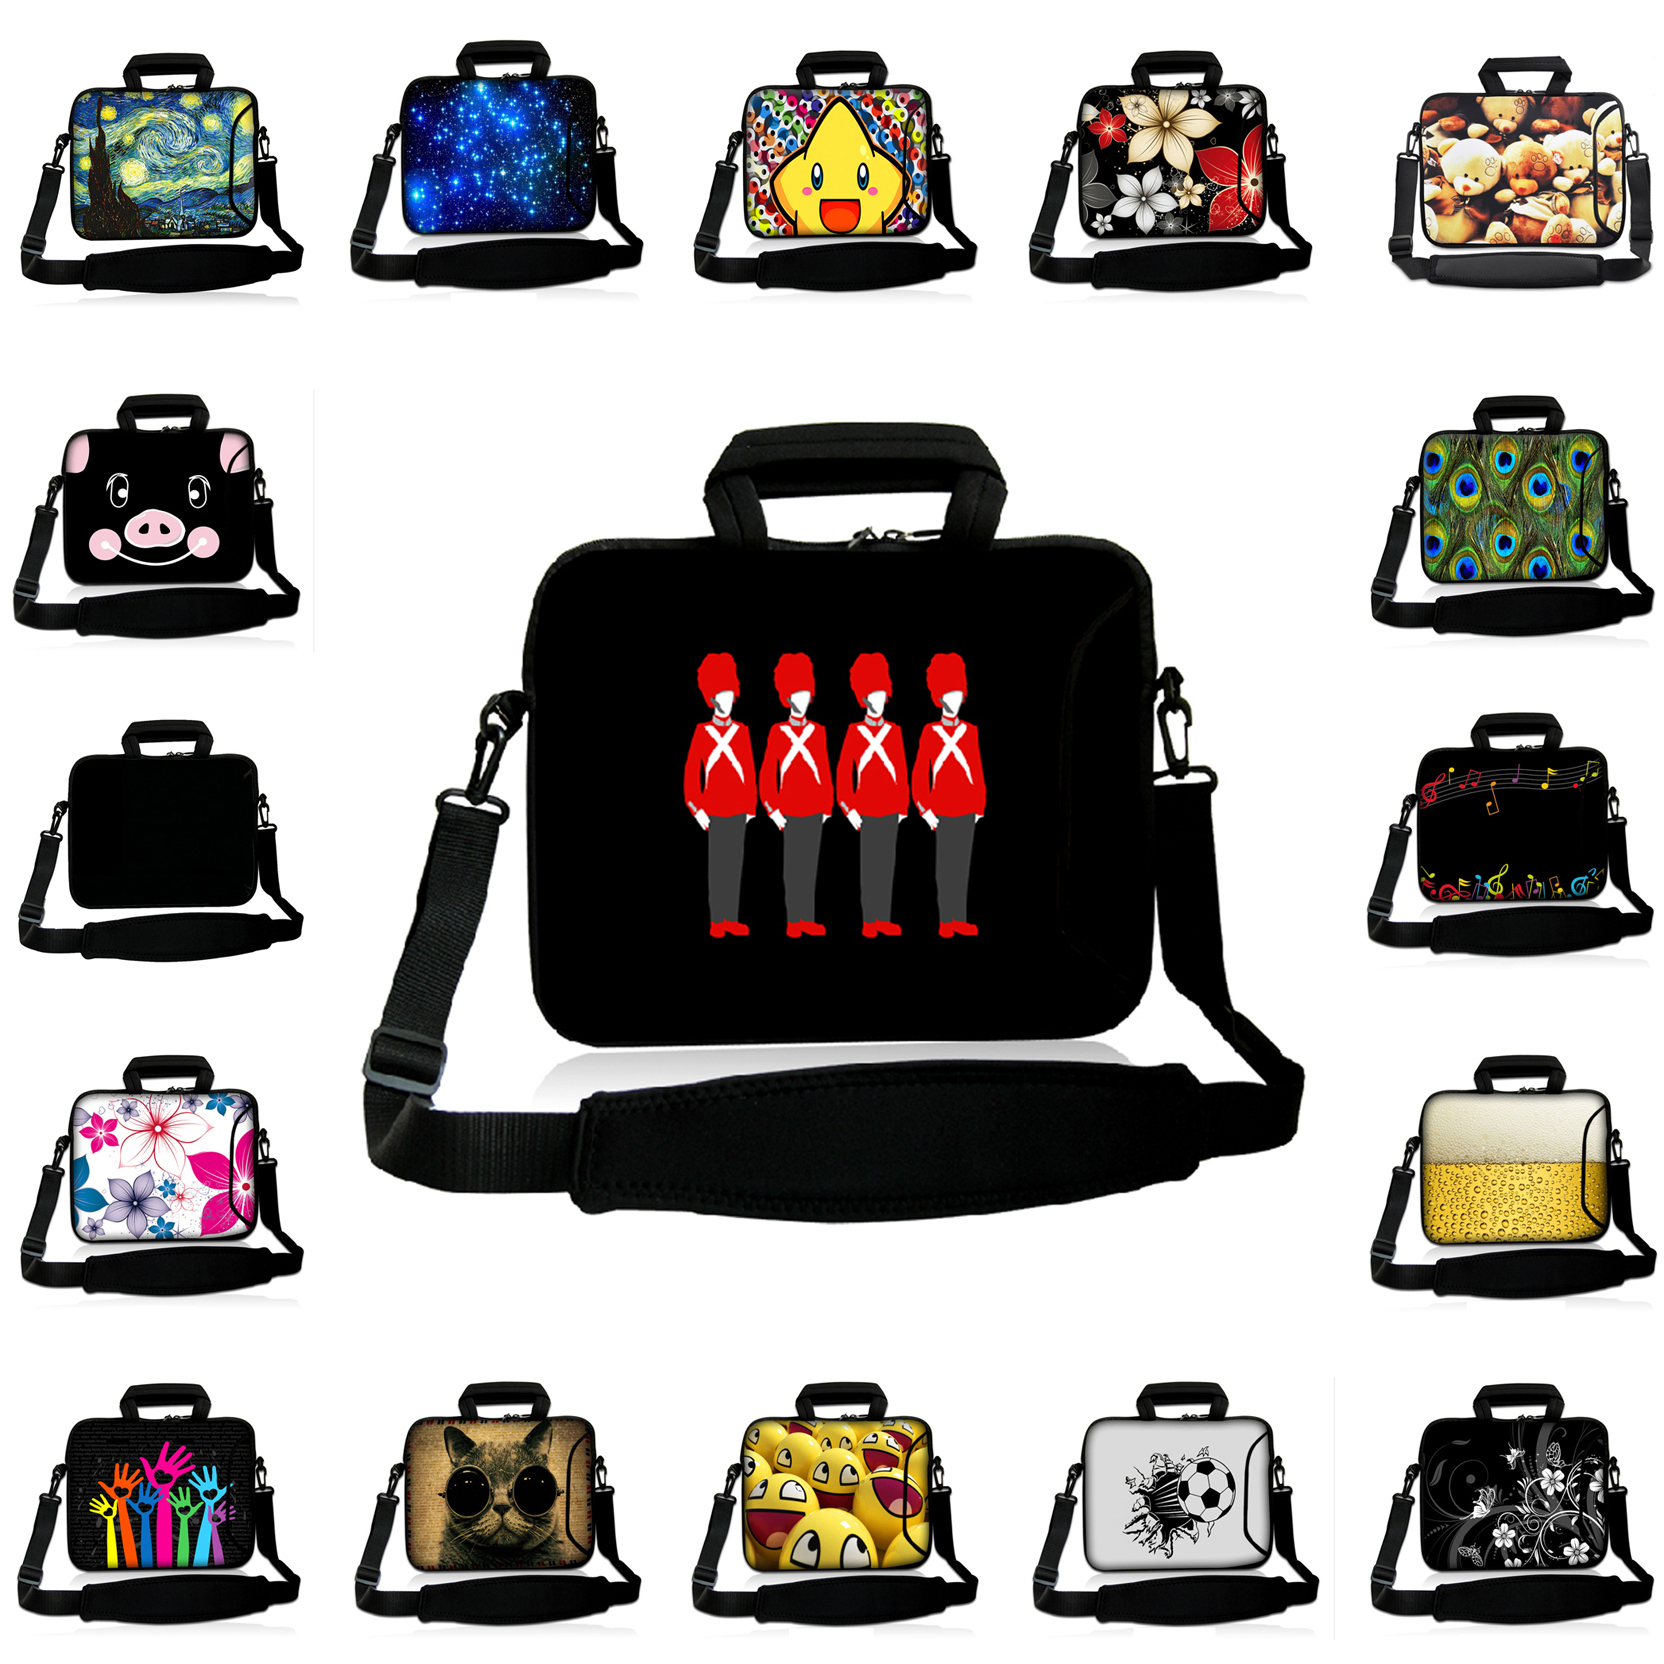 14.4 14.2 inch Neoprene Fashion Laptop Notebook PC Bags 14 14.1 inch Shoulder Messenger Computer Bags For Toshiba Lenovo Acer HP<br><br>Aliexpress